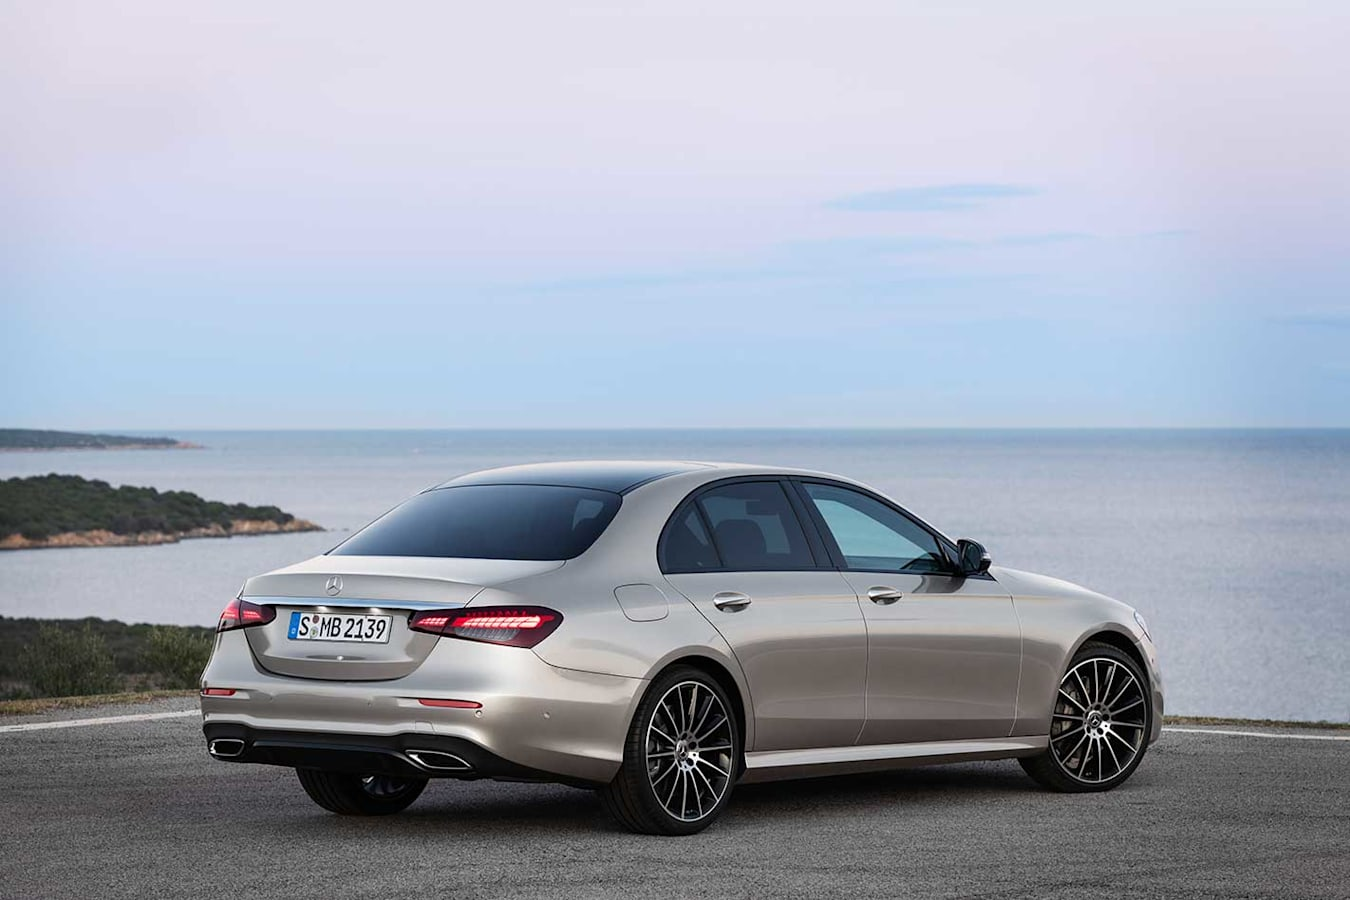 Mercedes-Benz E350 joins coupe, sedan and cabriolet ranges